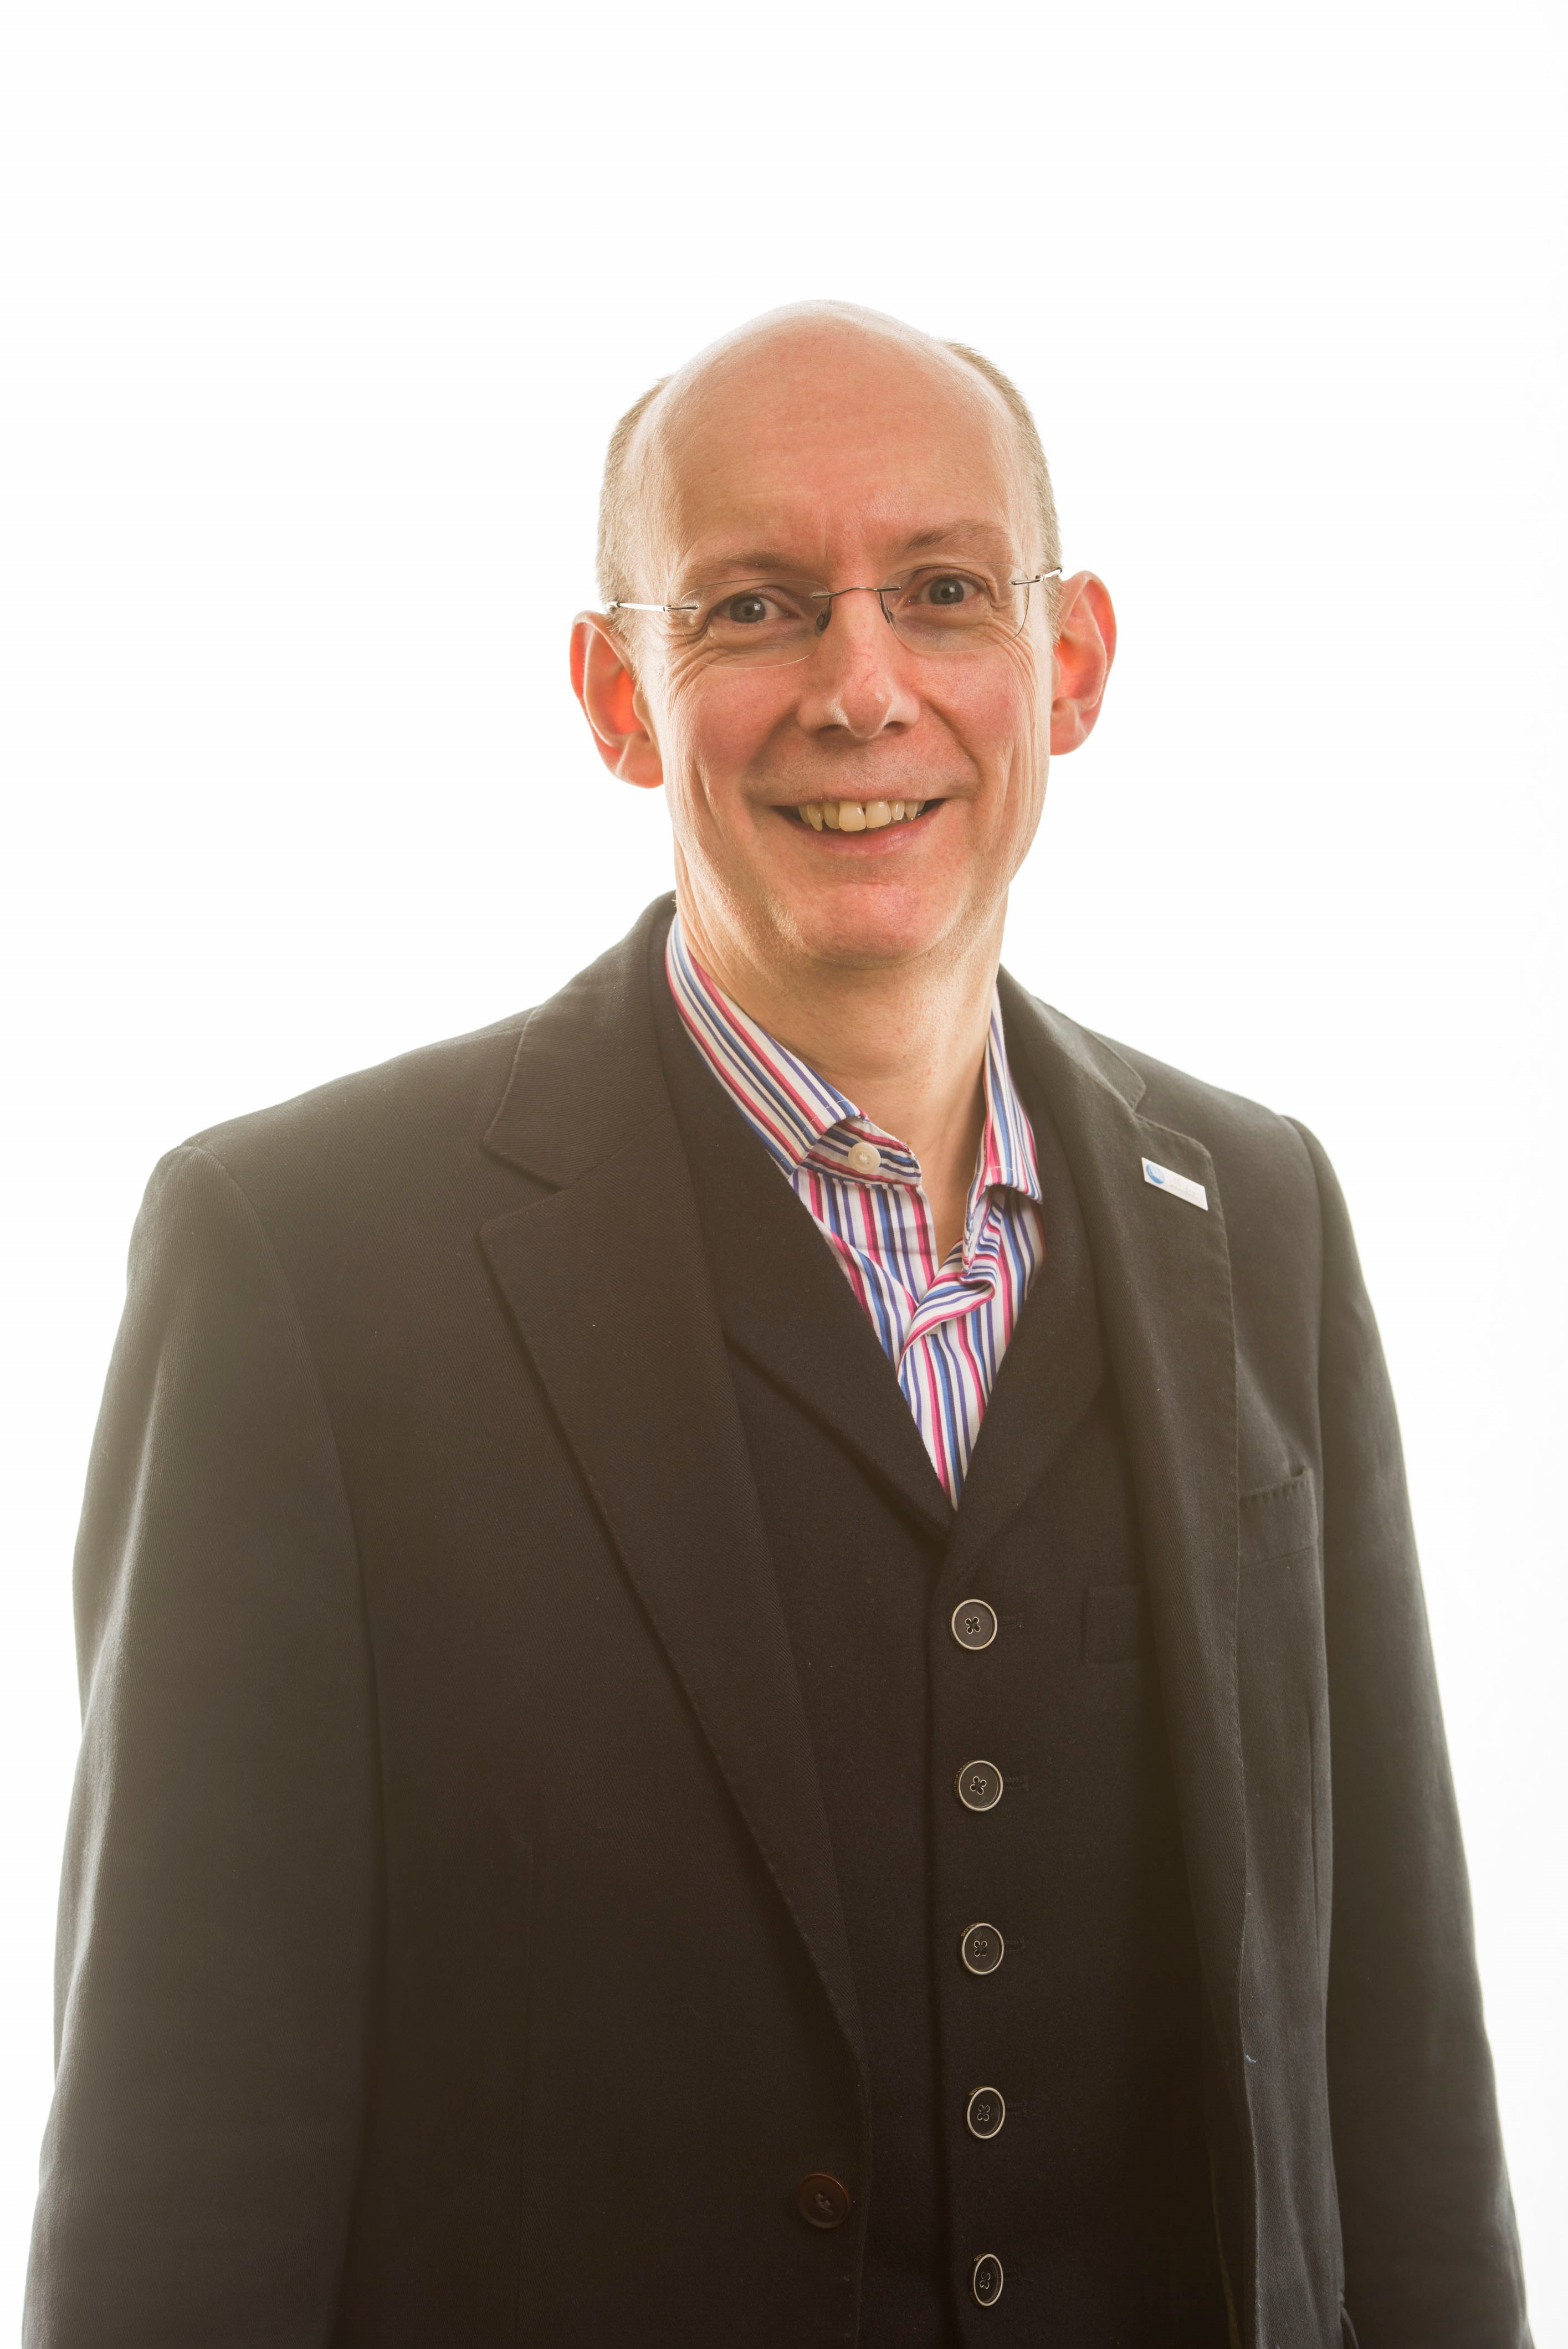 Gordon Hunt, current Chair of the Scottish Library and Information Council (SLIC)